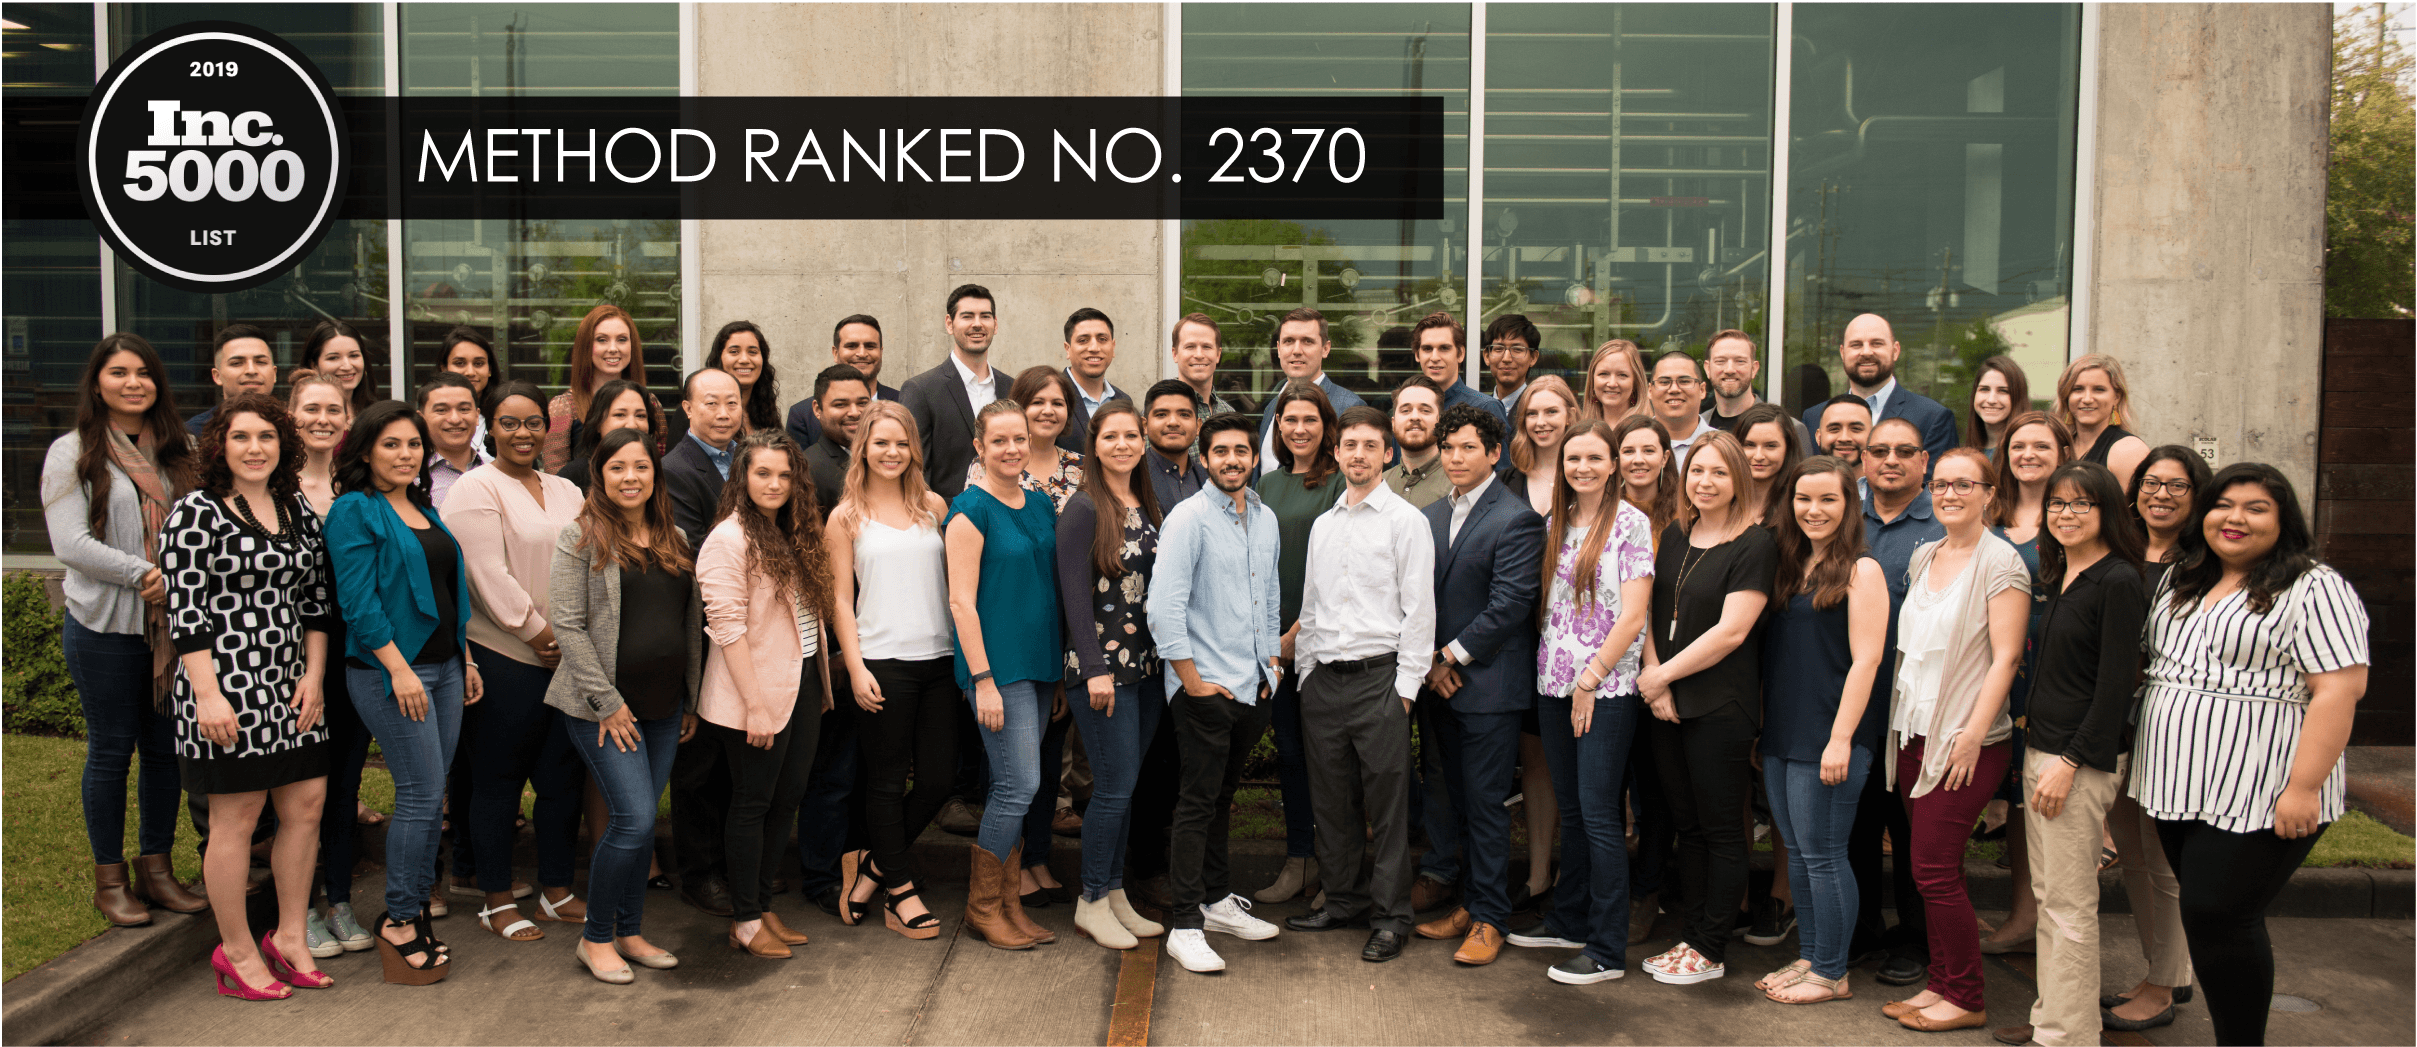 Method Architecture Ranked 2370 for 2019 Inc. 5000 List of America's Fastest Growing Private Companies